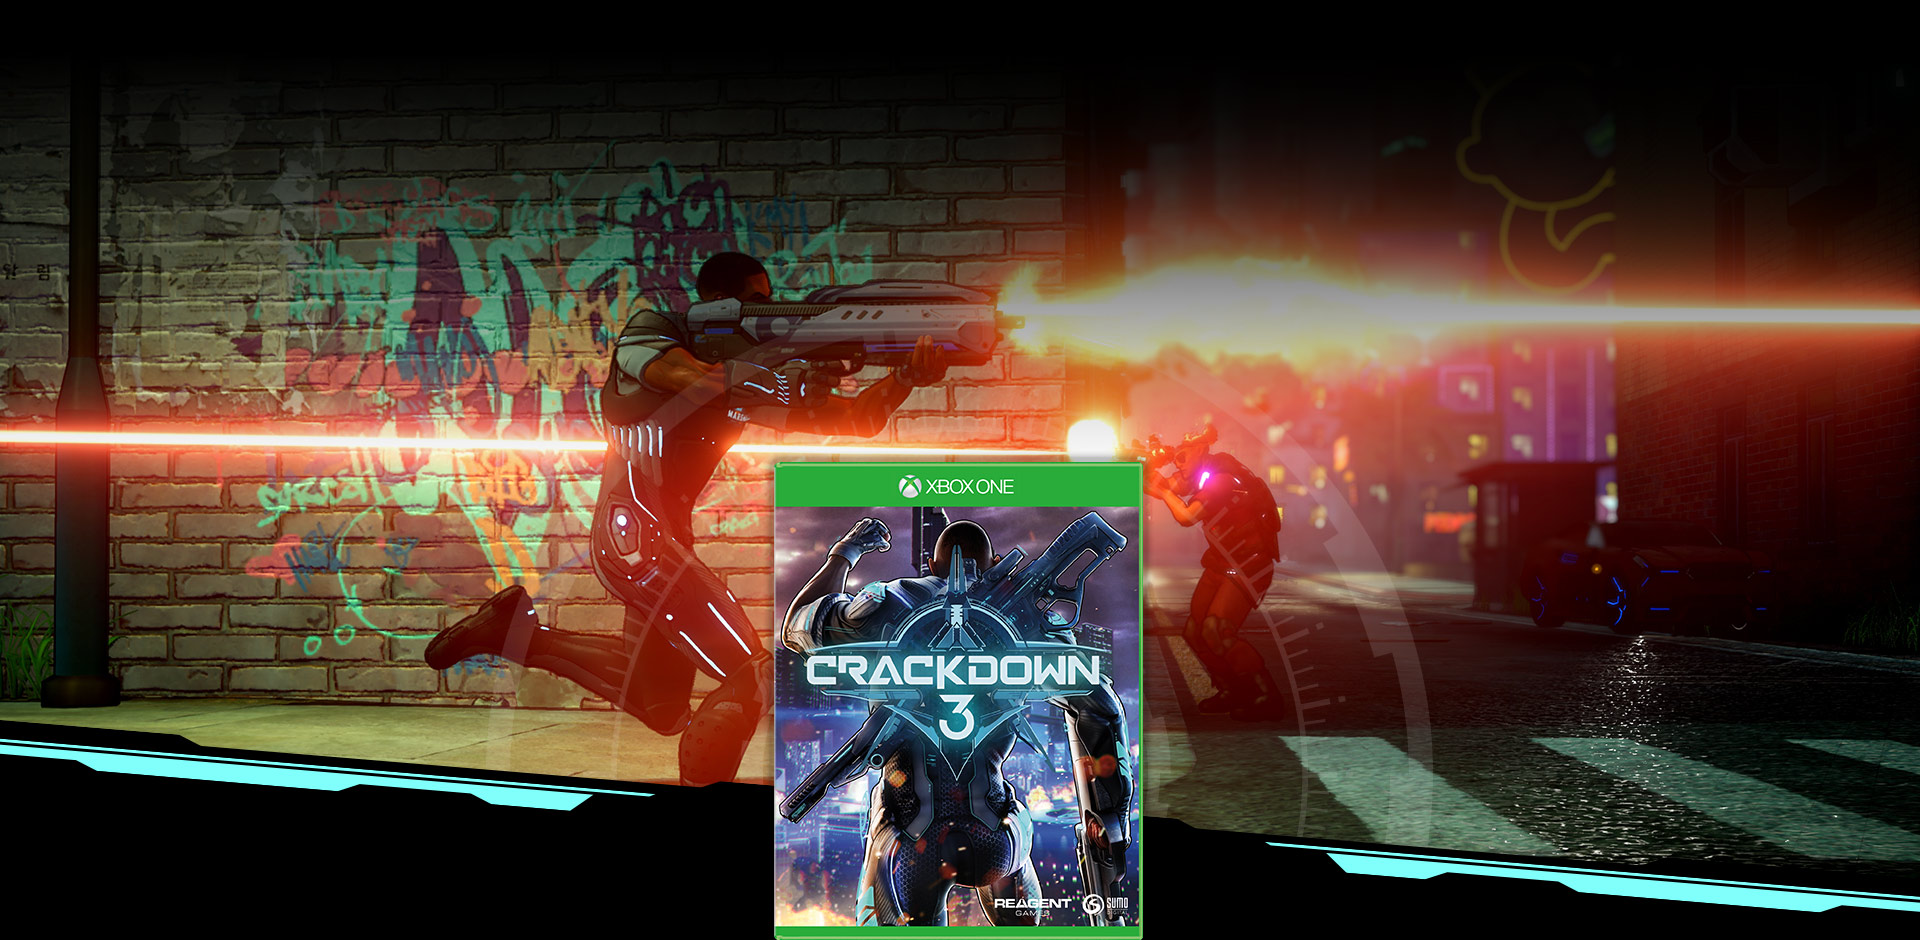 Crackdown 3 Boxshot, over background image of agent firing weapon next to a graffiti painted brick wall